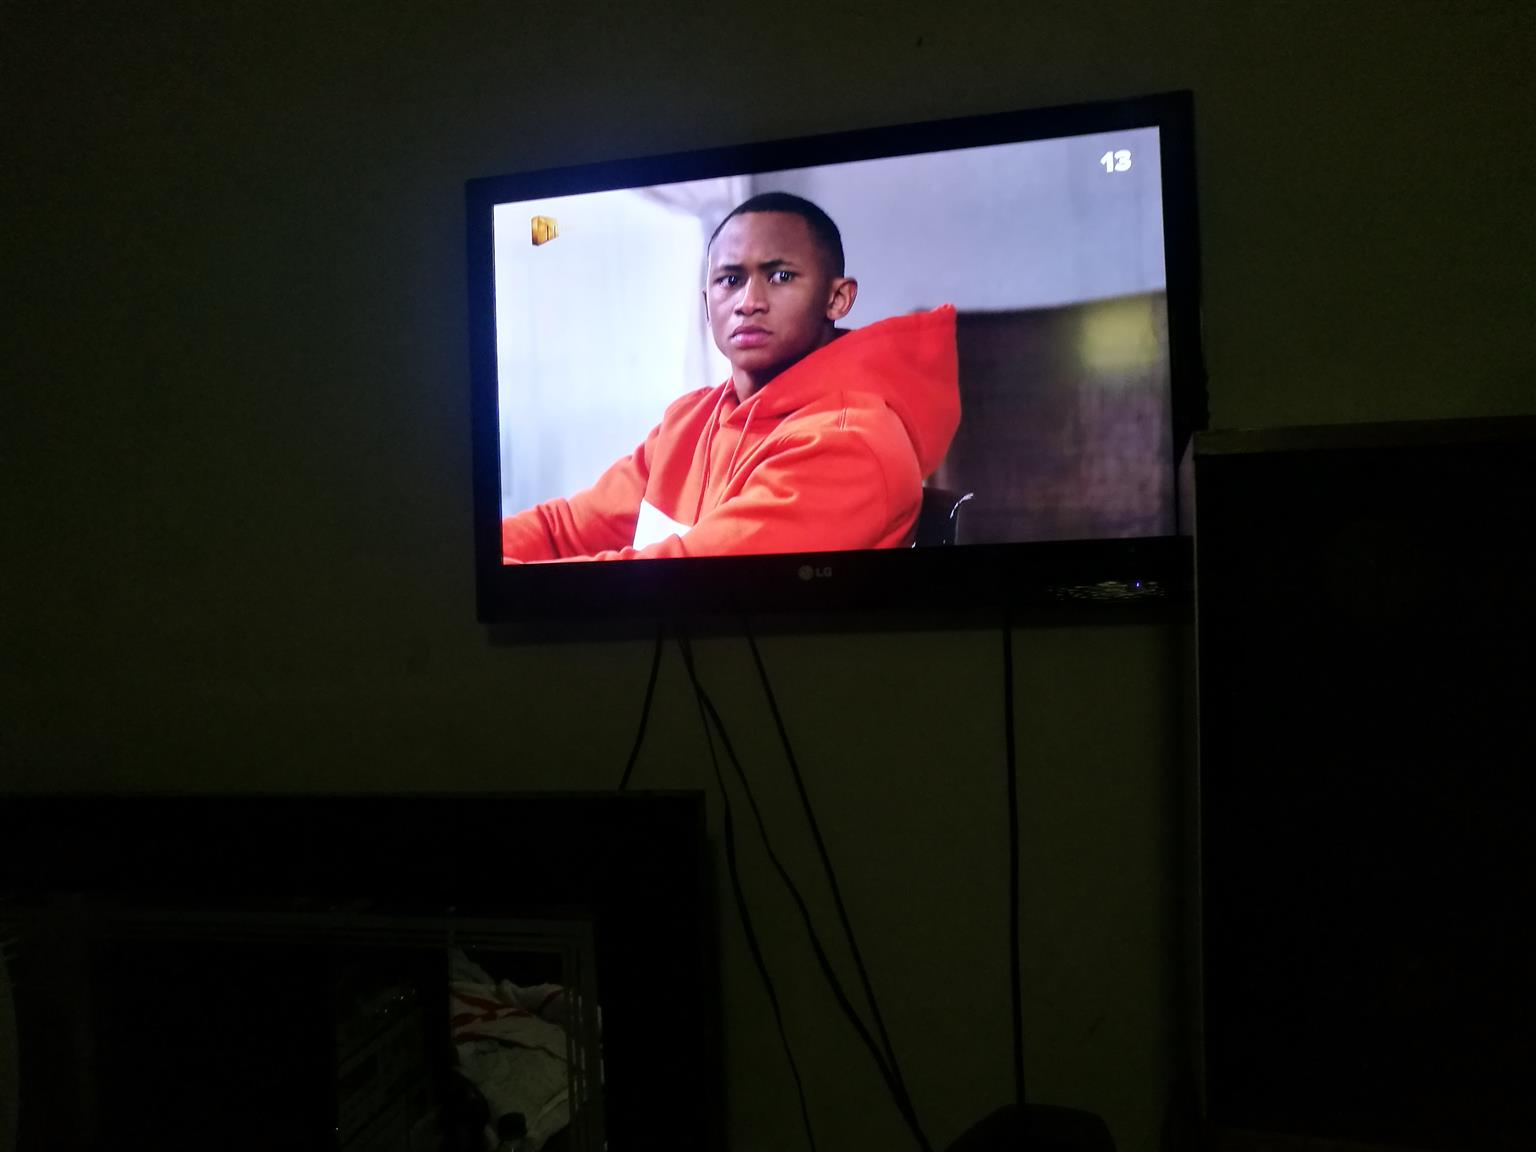 LG TV, 32 CM, Excellent condition (This add has been sold)